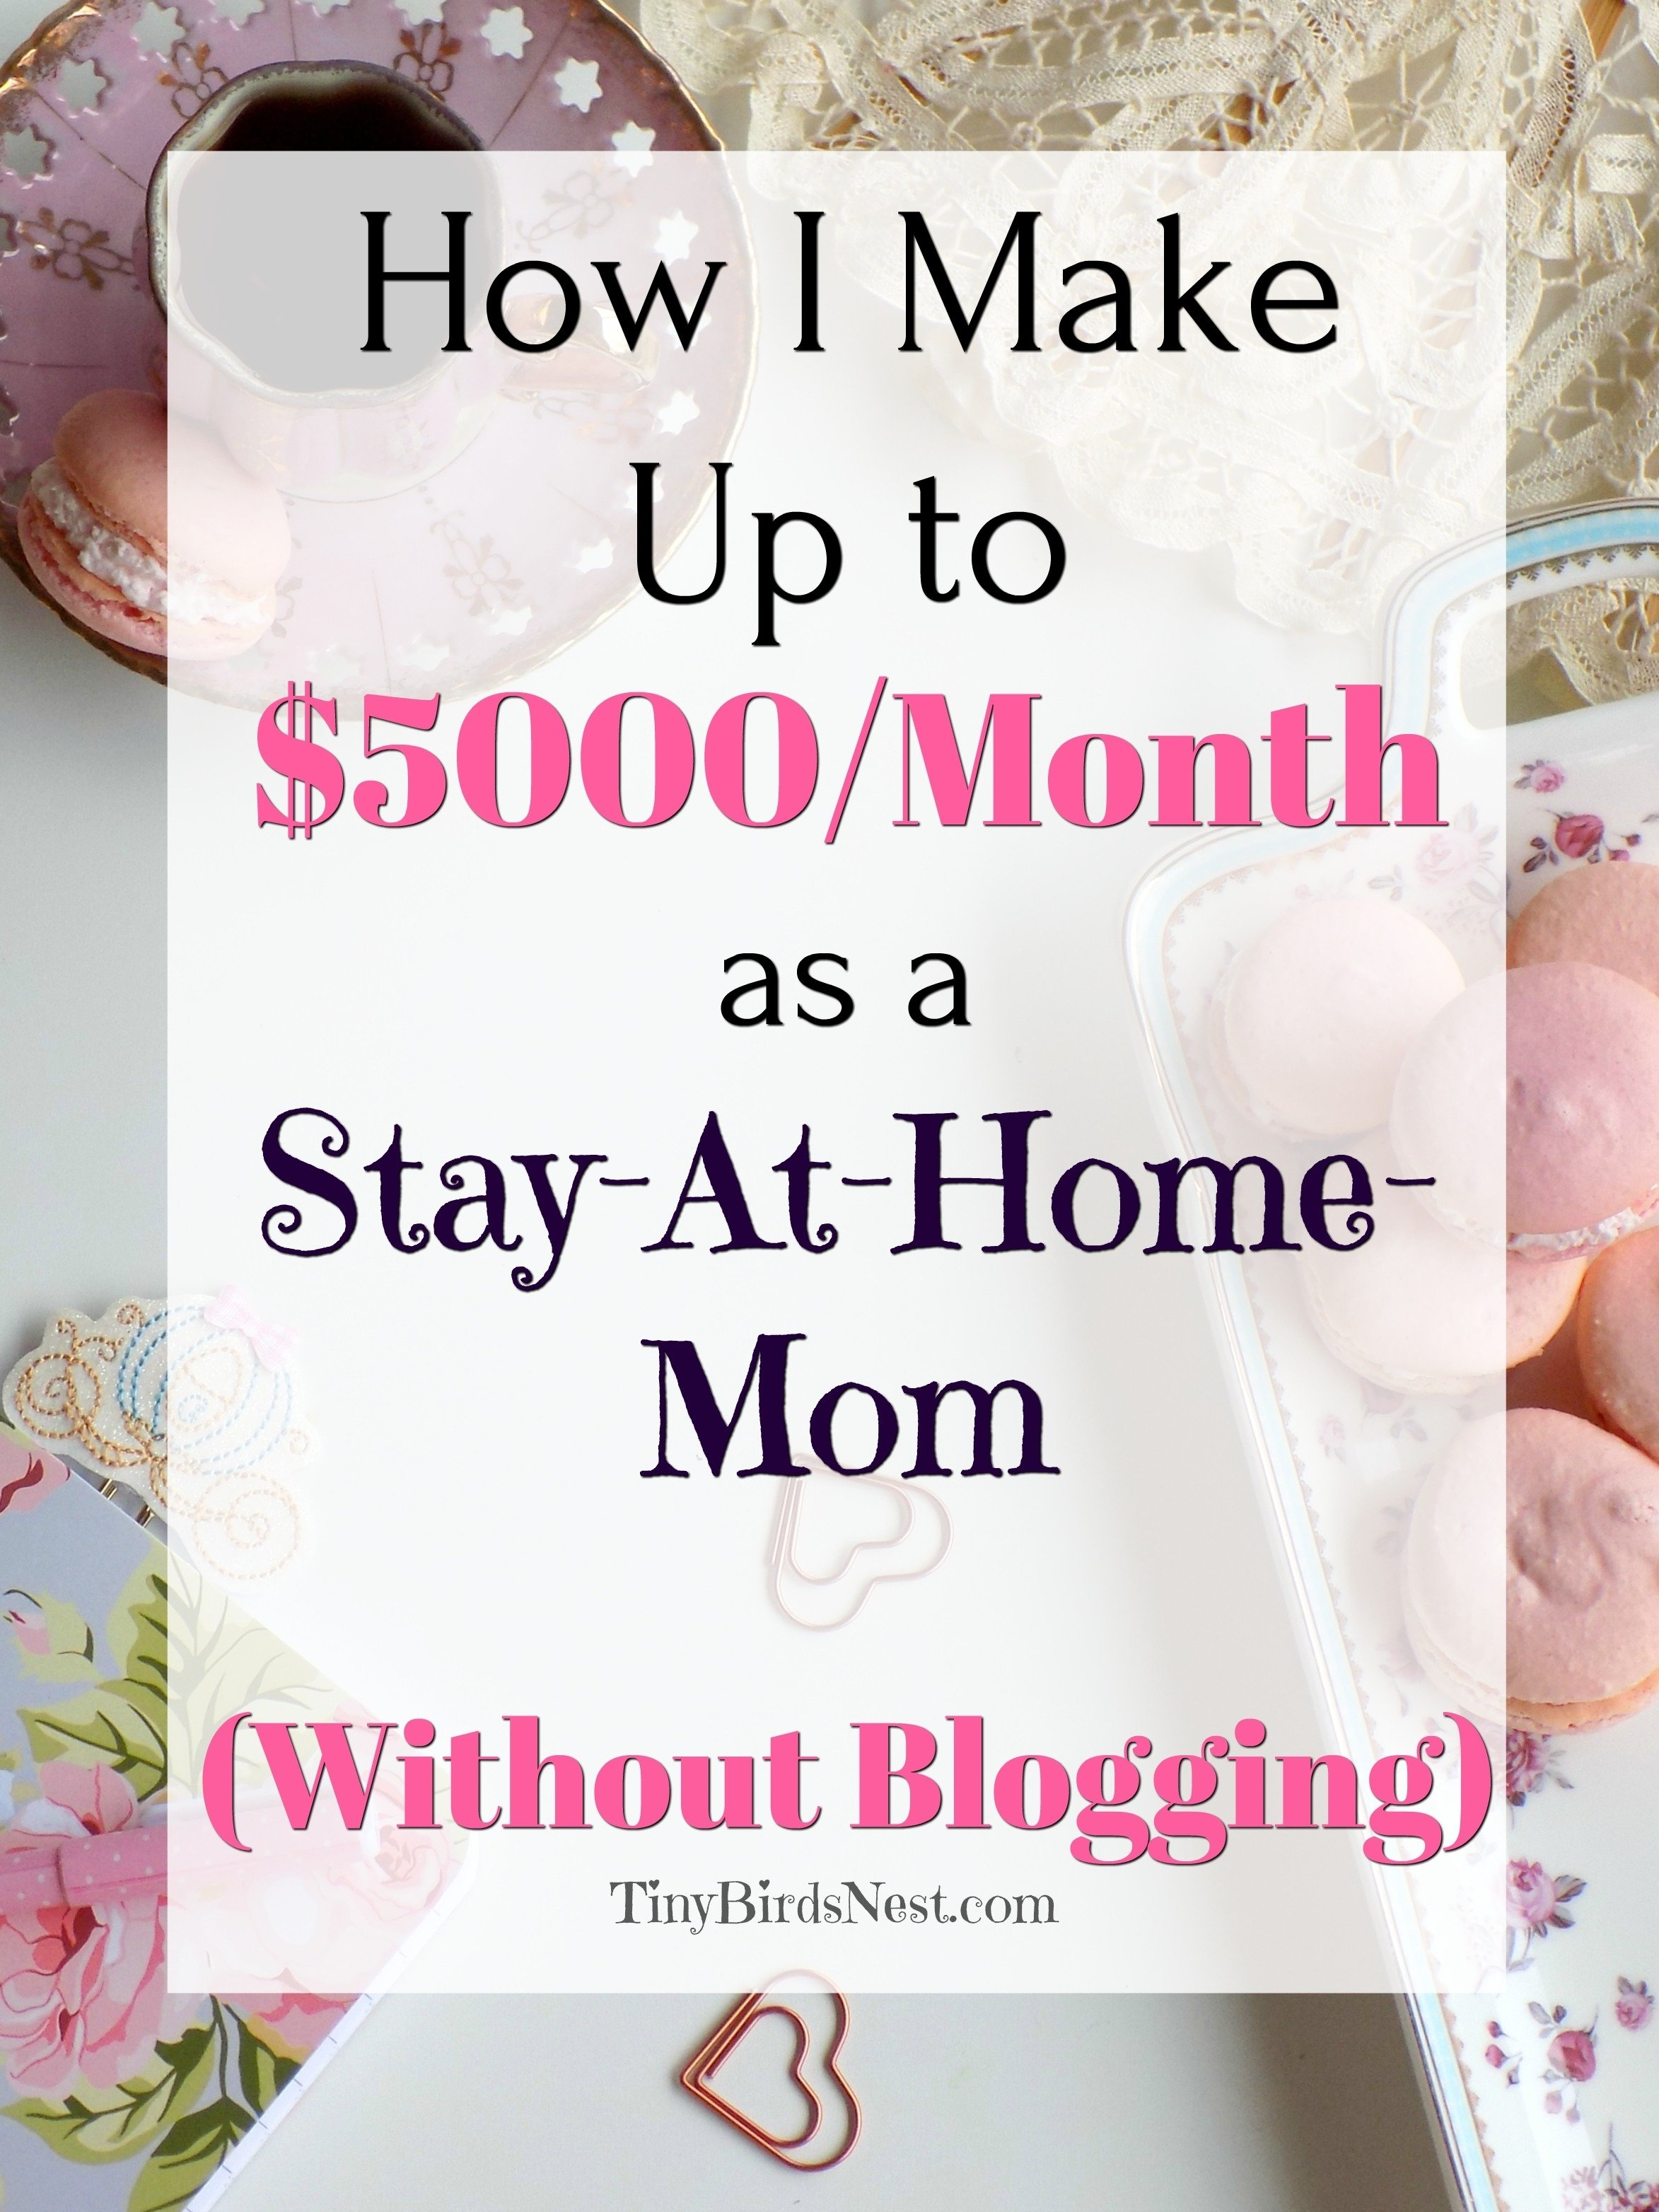 10 Trendy Ideas For Stay At Home Moms To Make Money 9 ways i make money as a stay at home mom tiny birds nest beautiful 2020